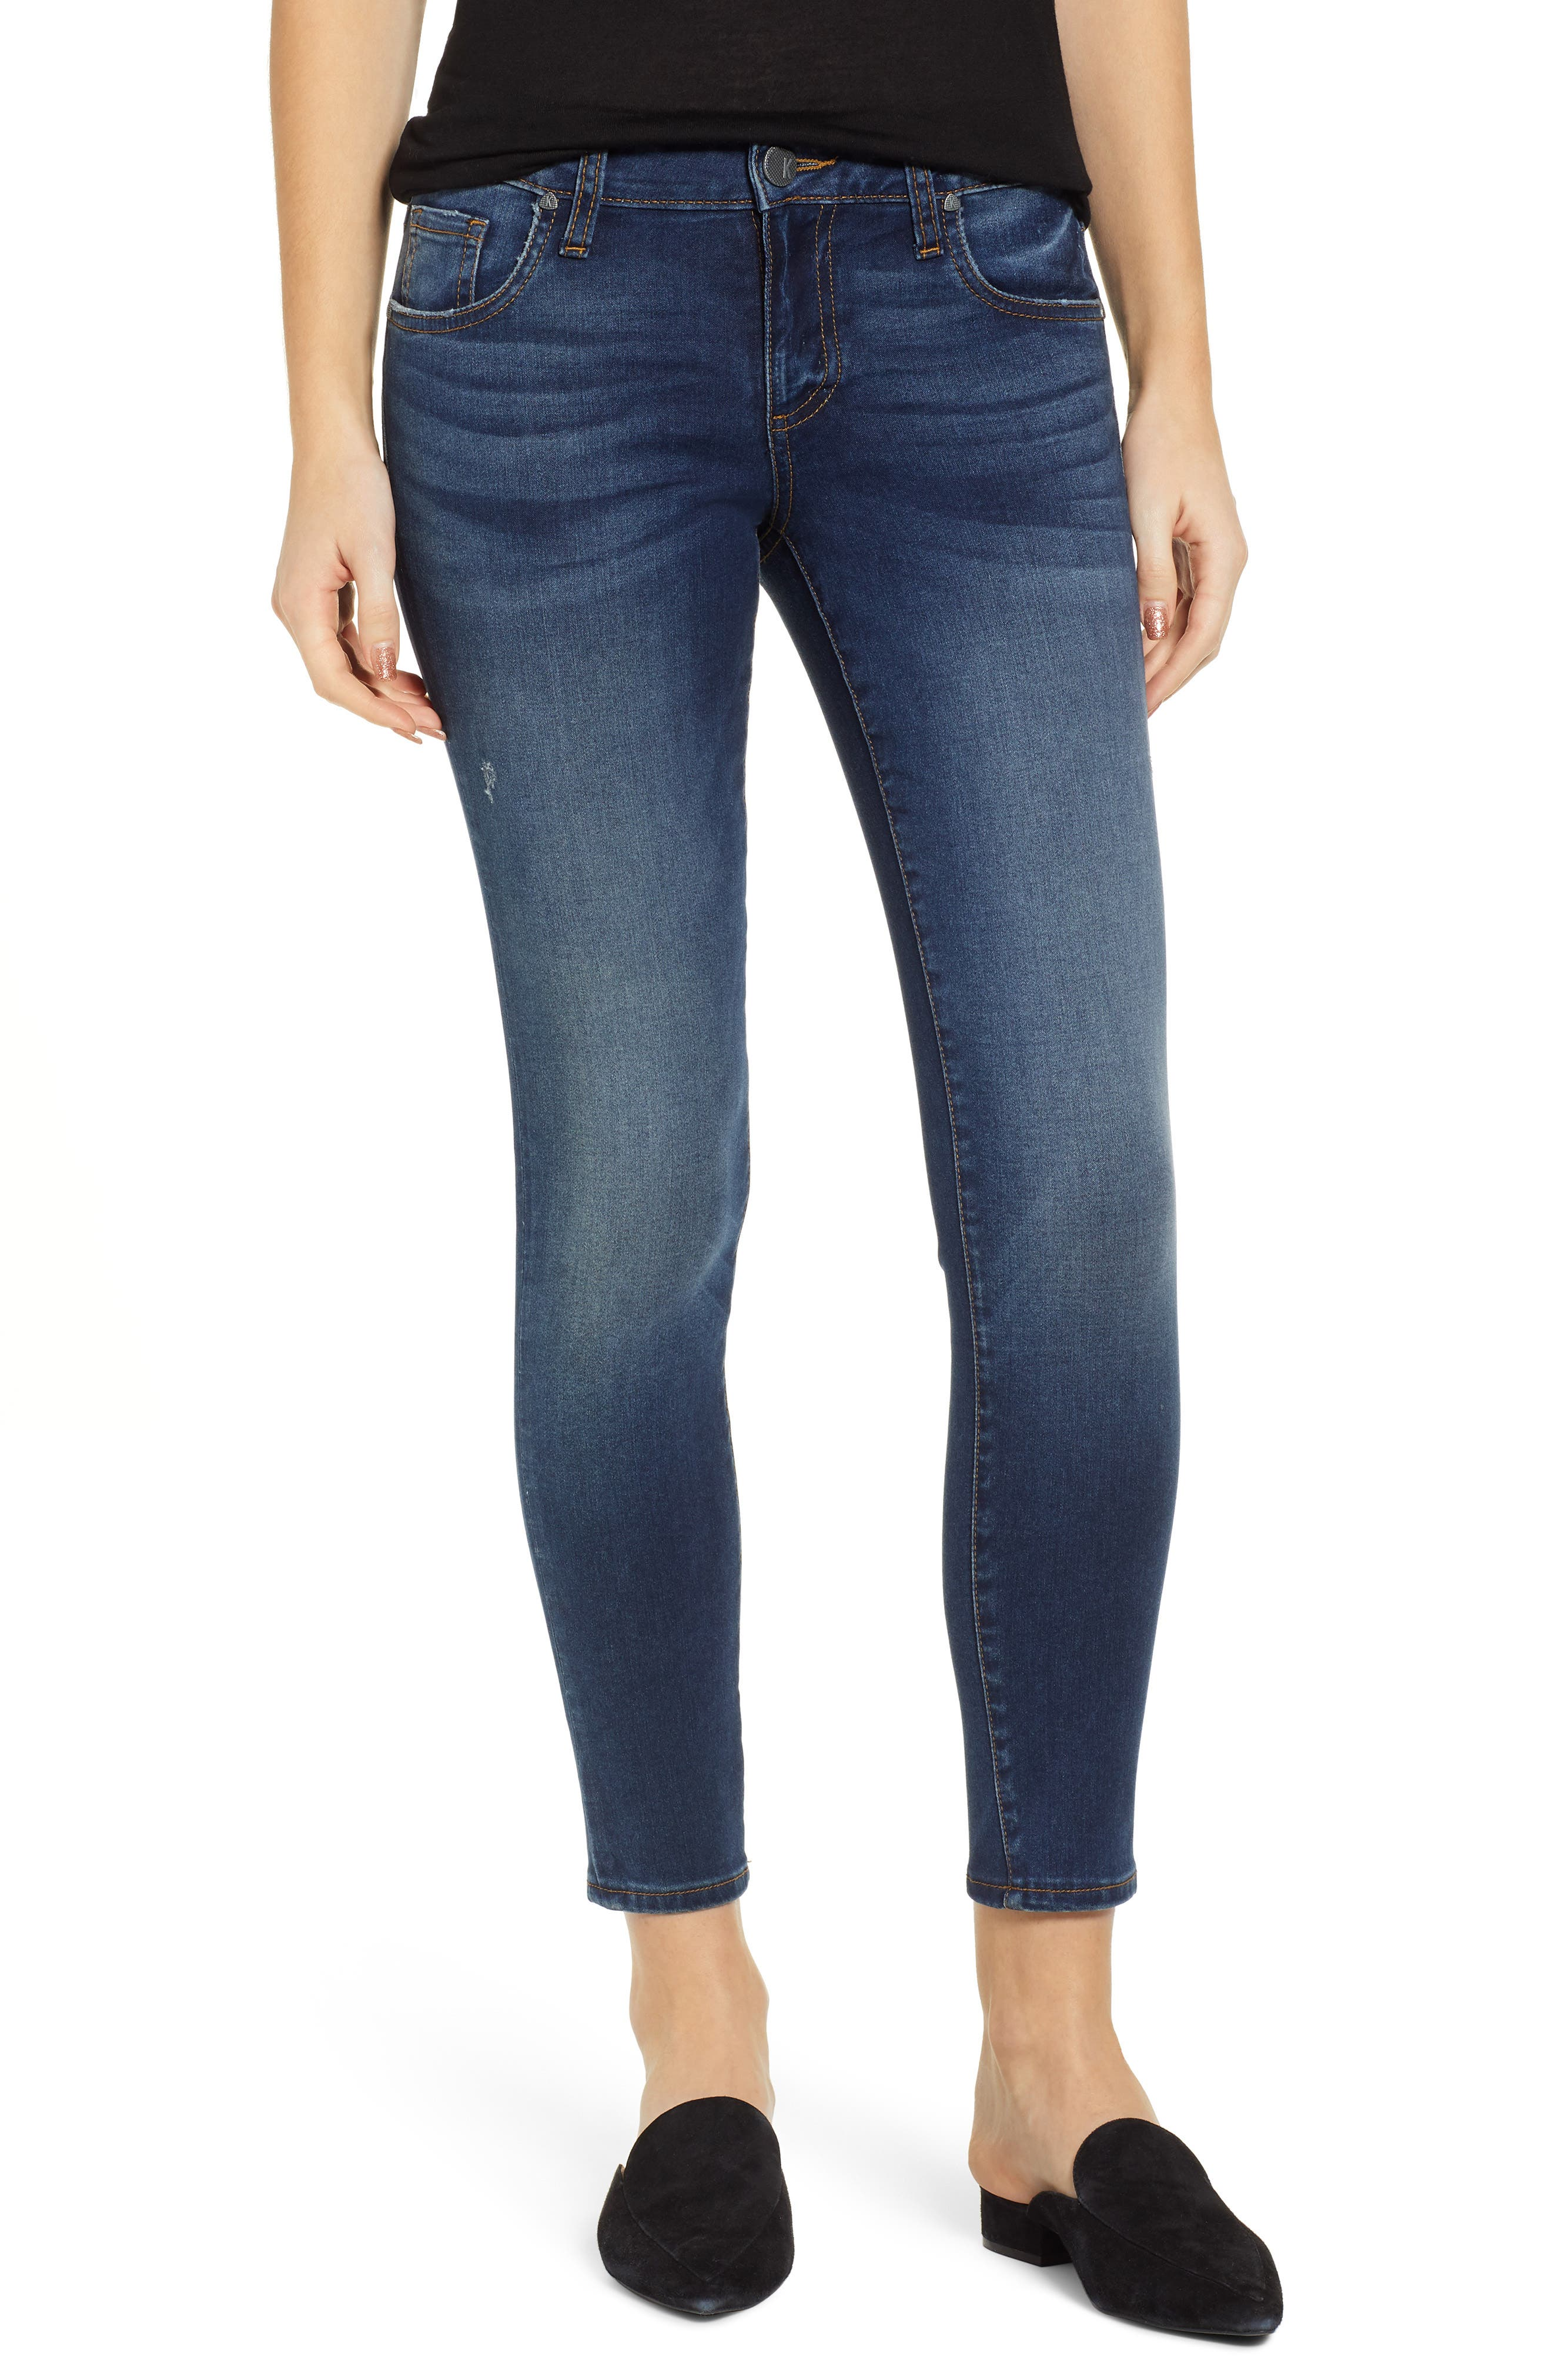 KUT FROM THE KLOTH KUT From The Koth Donna Ankle Skinny Jeans, Main, color, 400